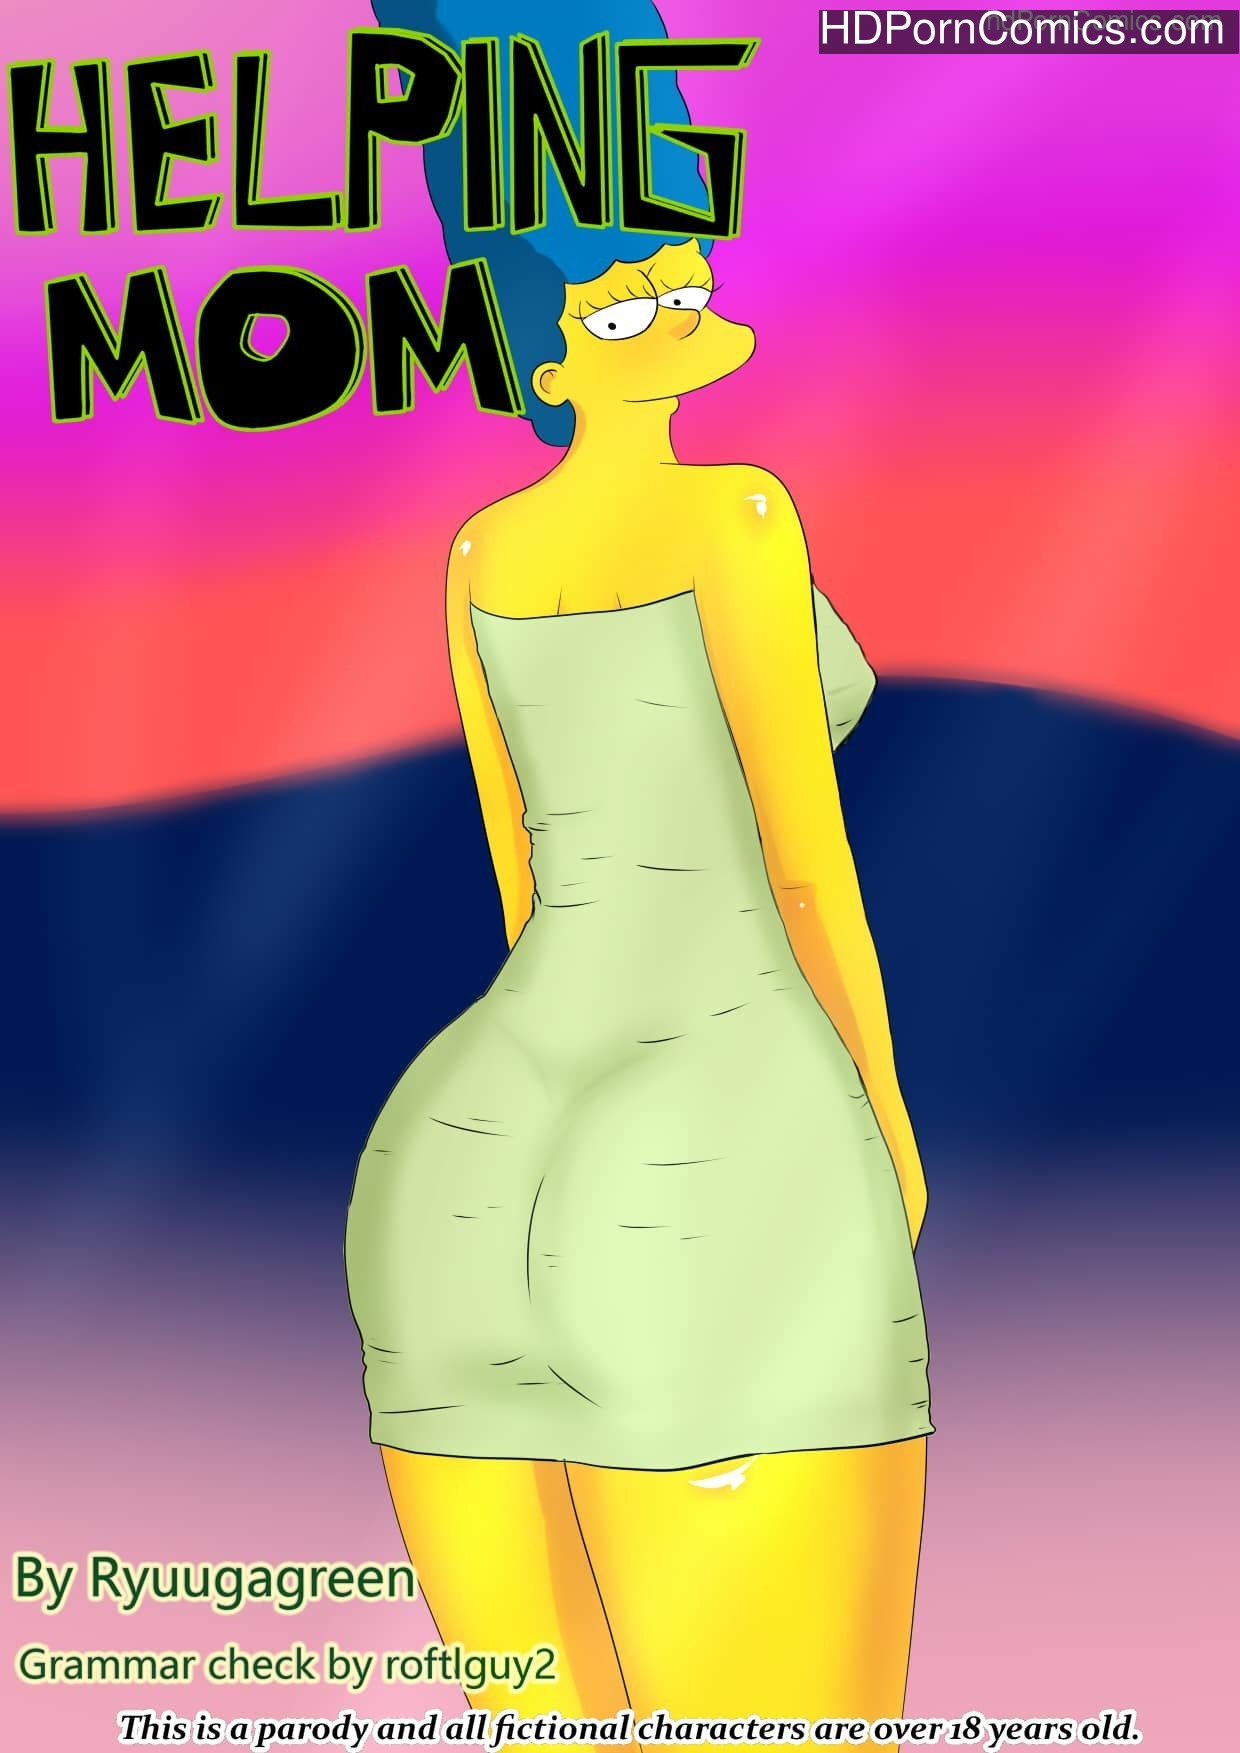 Simpsons – Helping Mom free Porn Comic